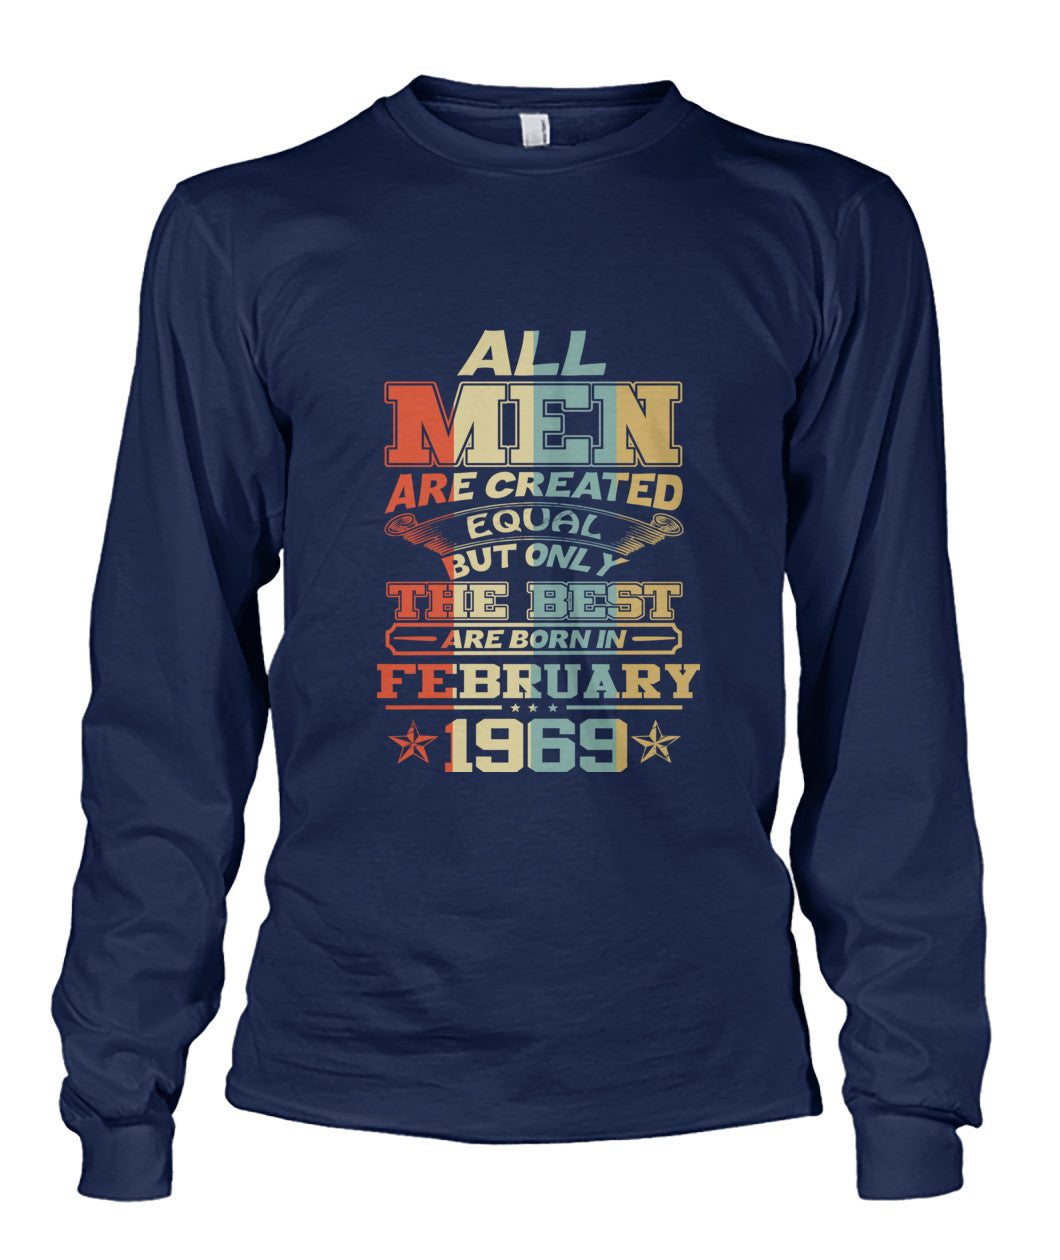 All Men Are Created Equal Only Best Are Born February 1969